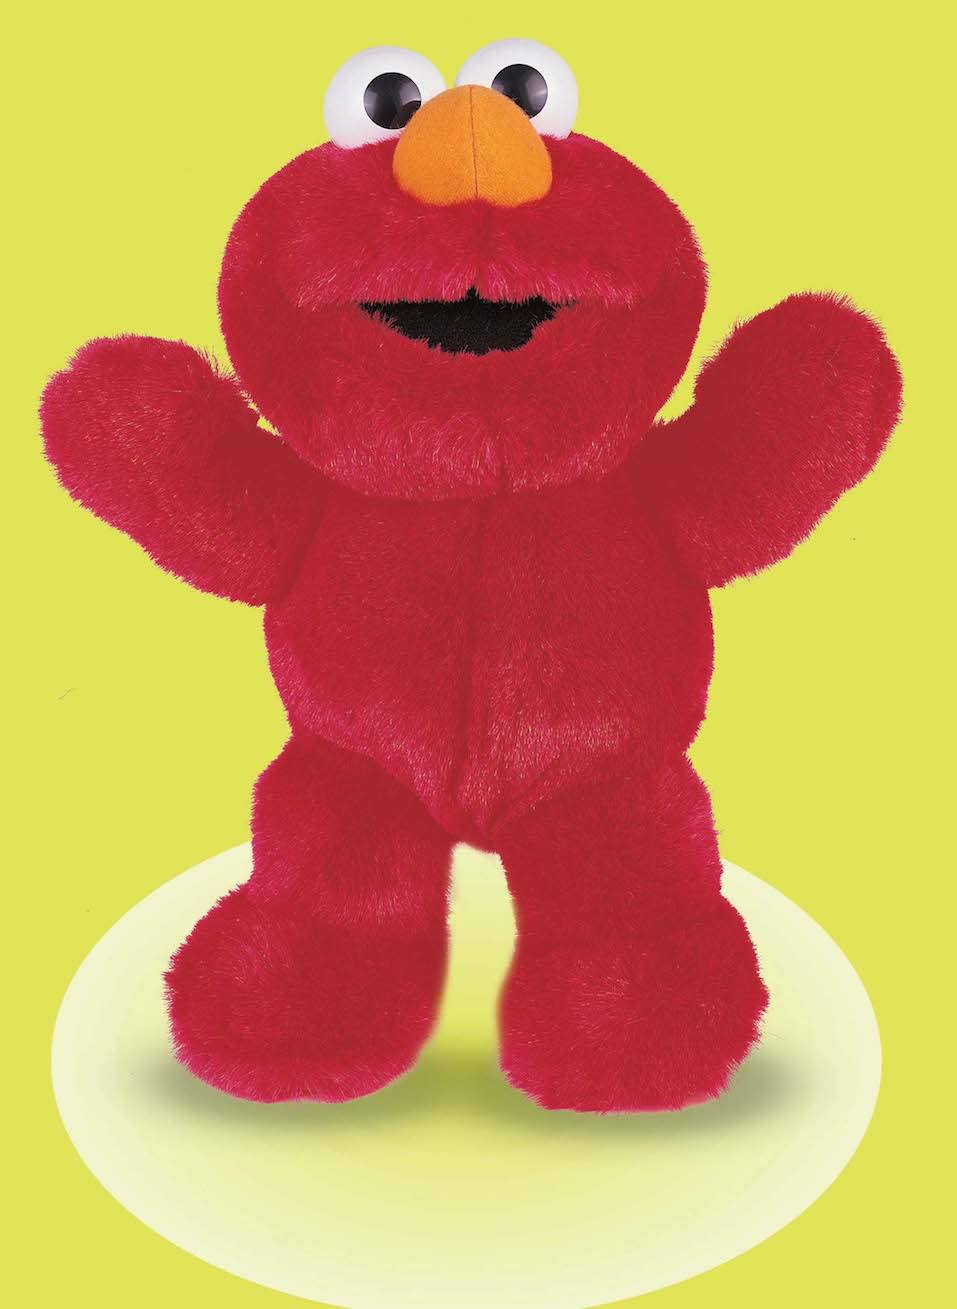 Fisher Price's Tickle Me Elmo